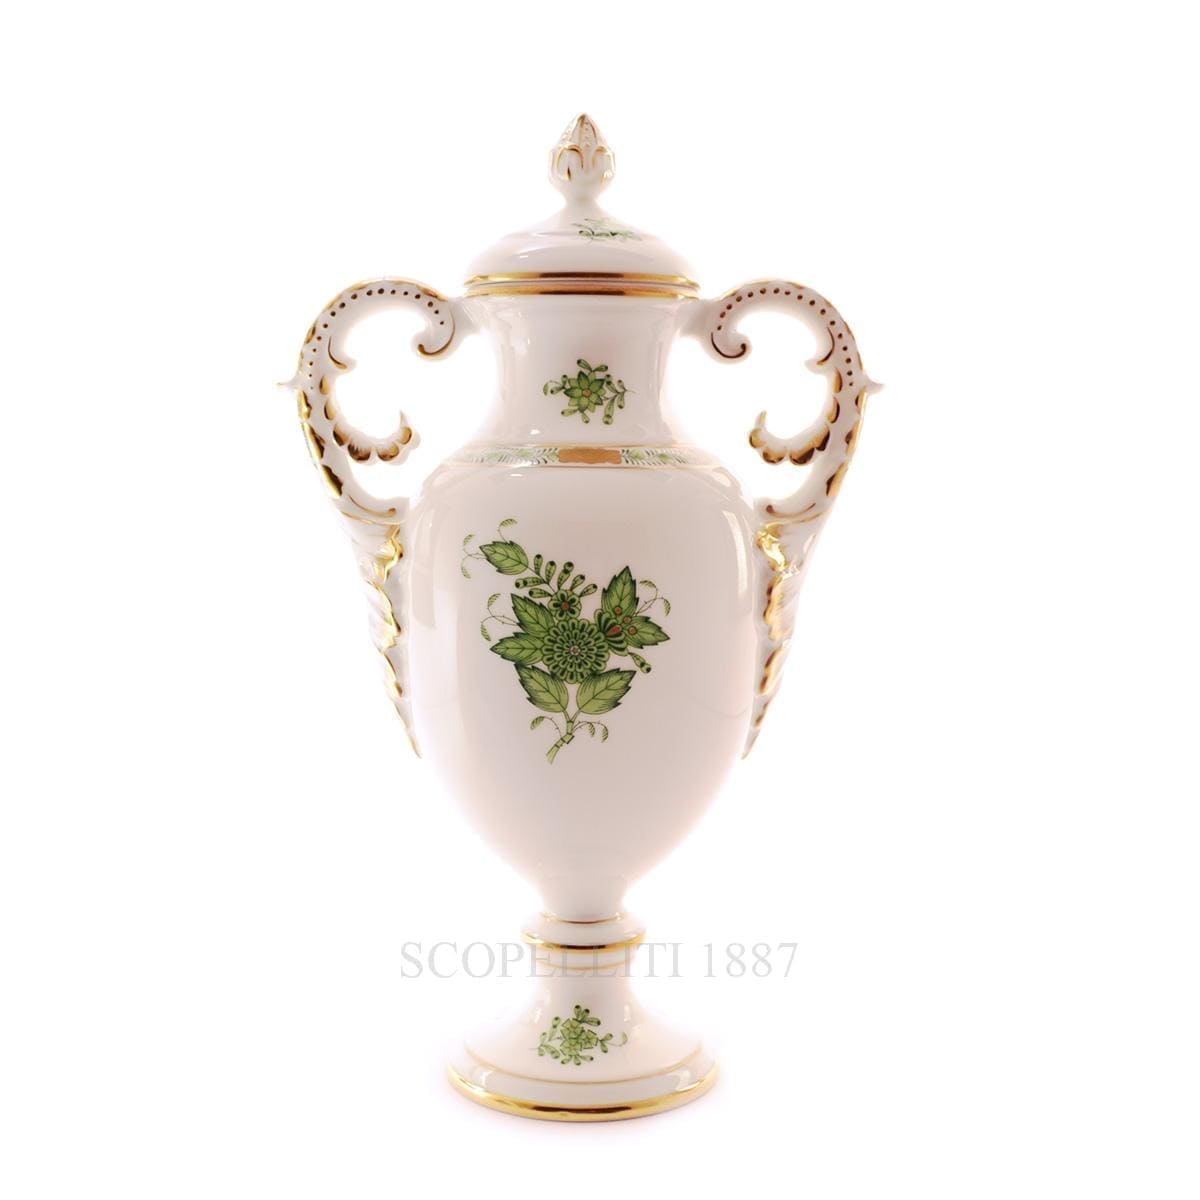 herend porcelain apponyi fancy vase with lid